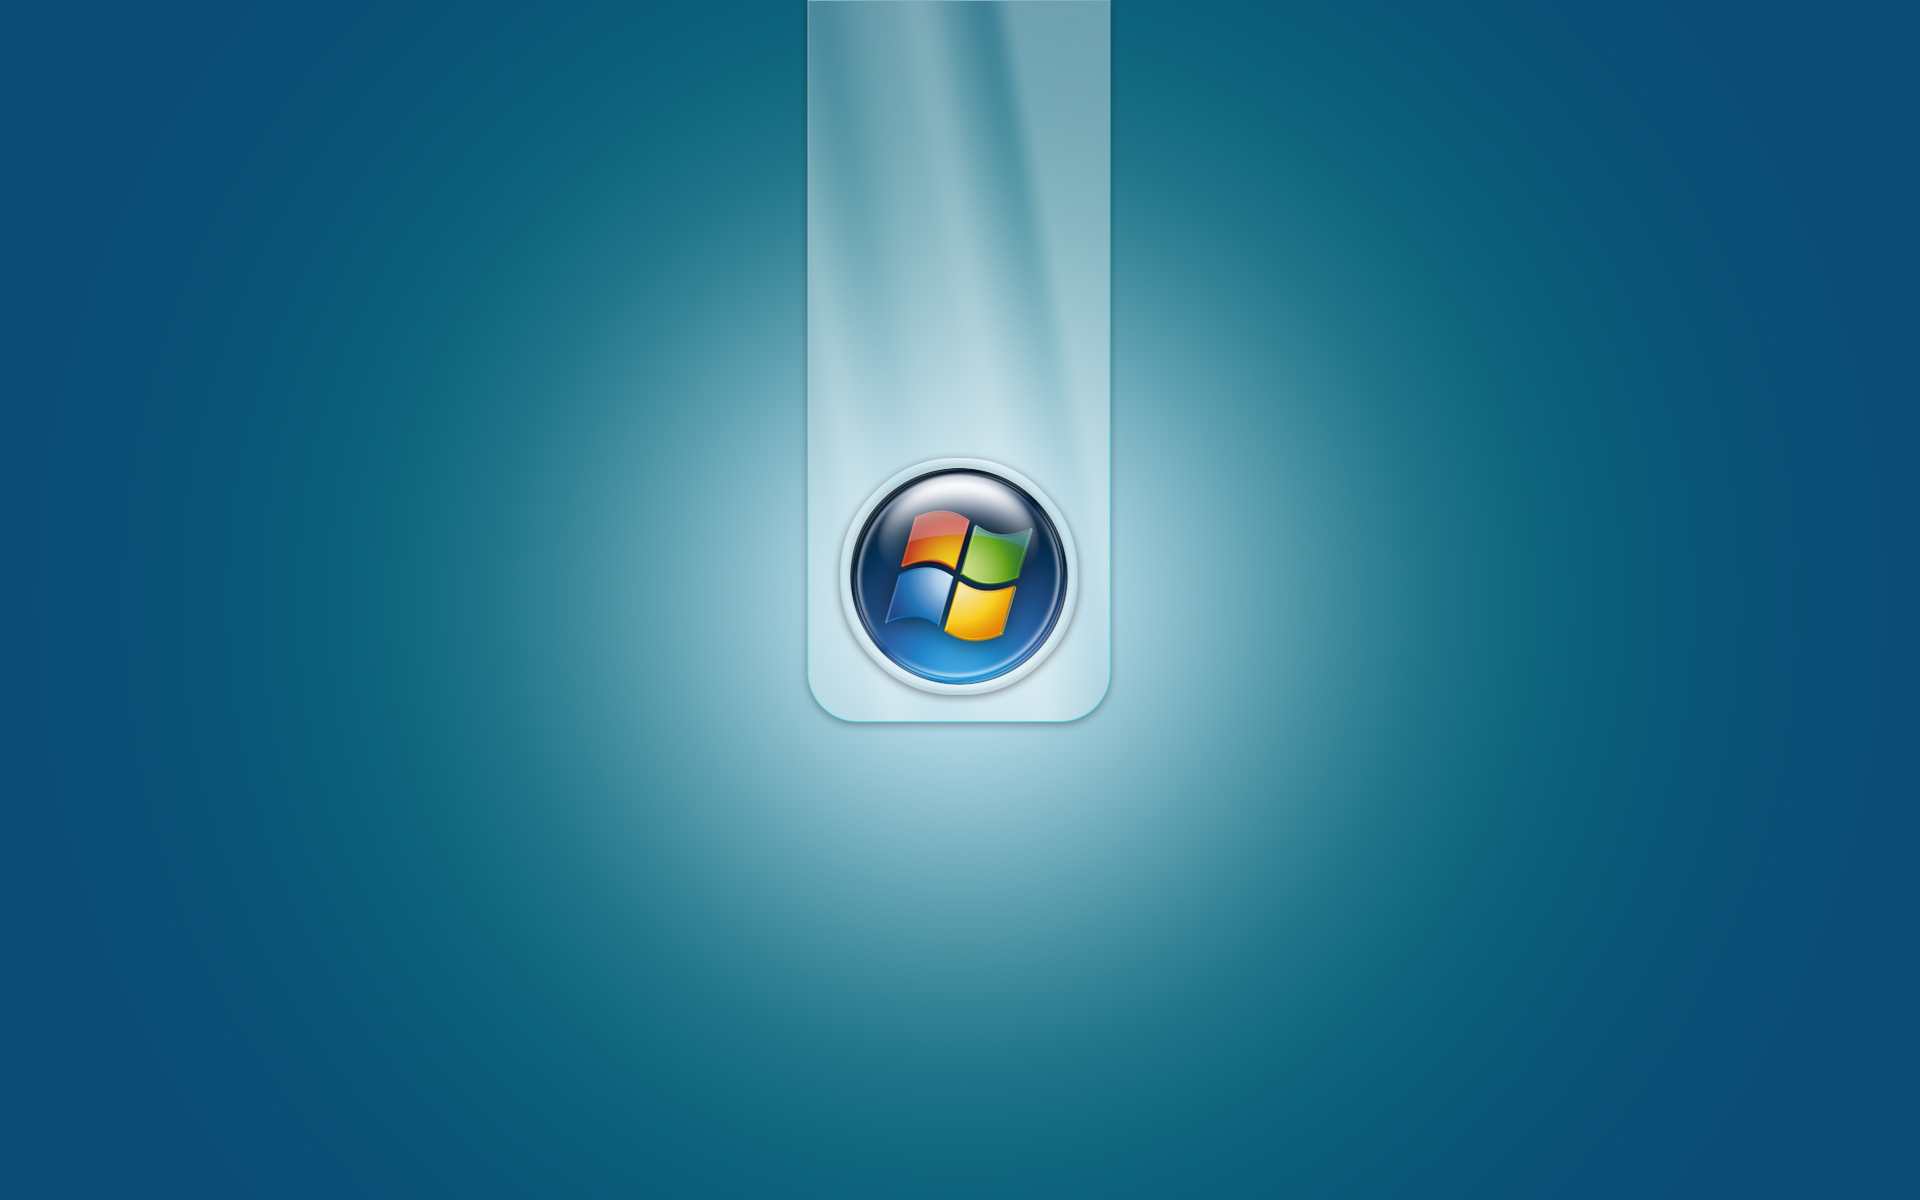 A beautiful screen saver for Windows 7